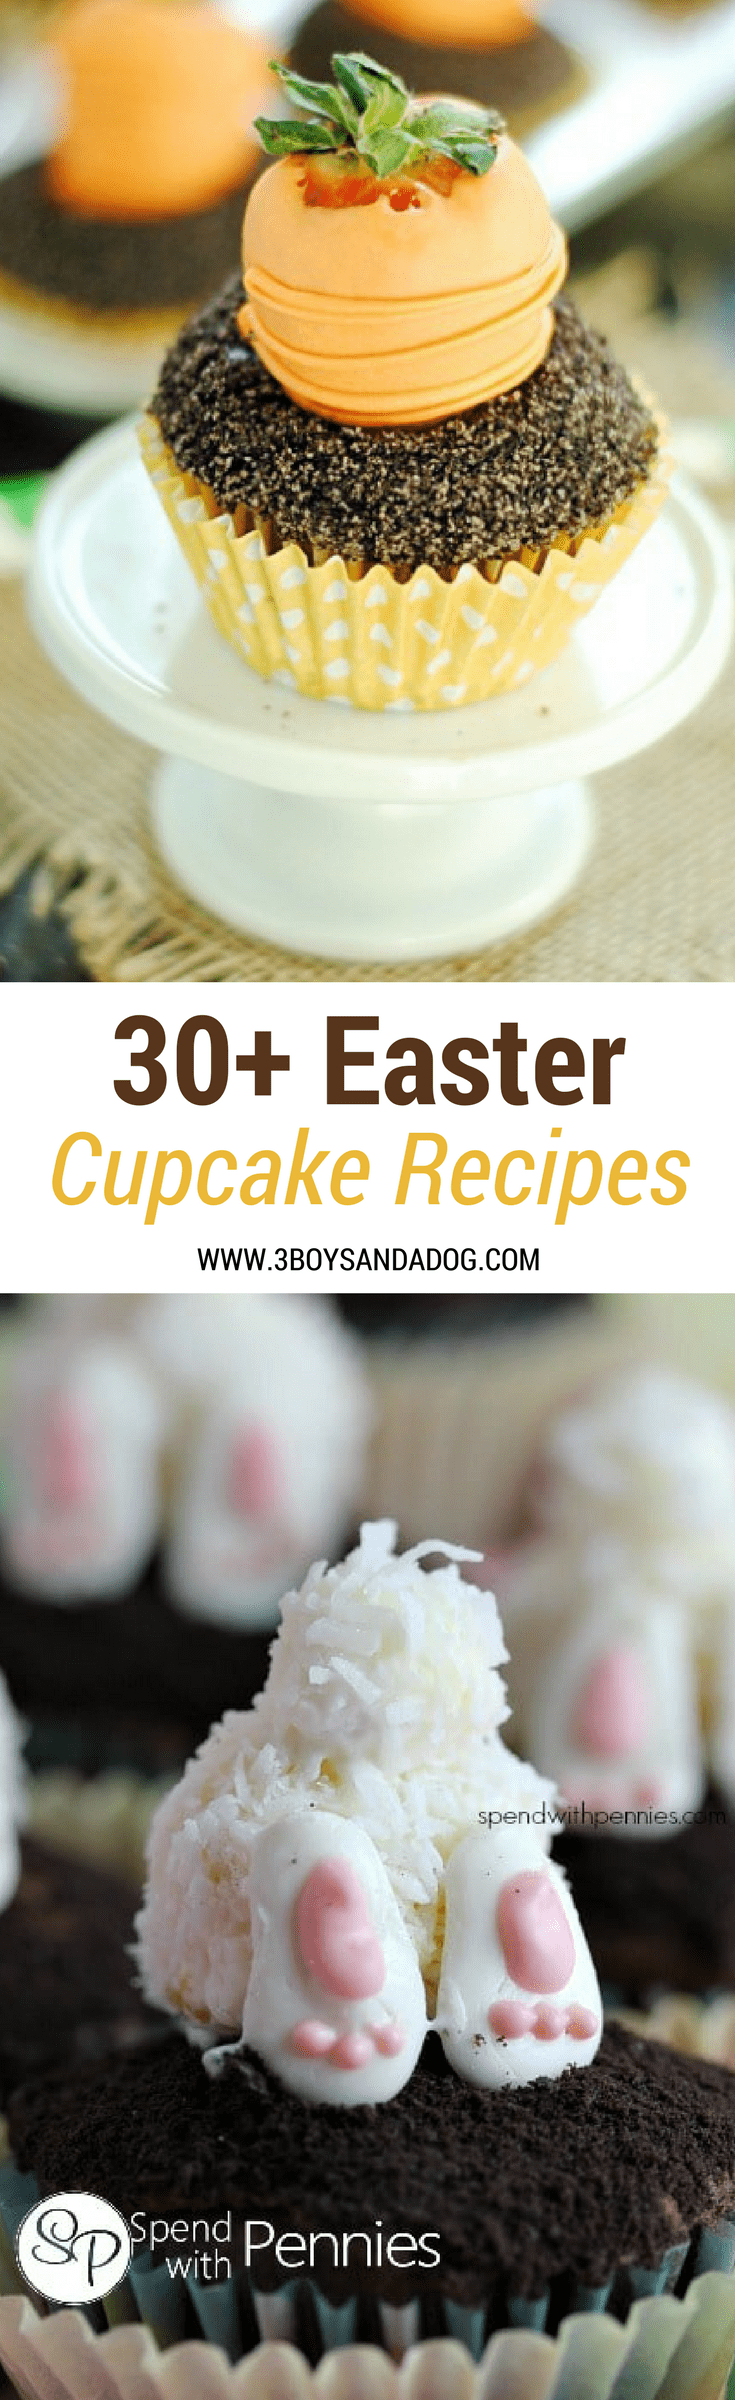 This Easter, go mini!  With this Ultimate List of Easter Cupcake Ideas, you should be able to bring dessert to every Easter function with no overlap!  From Easter Baskets to Carrot Gardens, from Bunny Butts to Pastel Cupcakes, this list of Easter Cupcake Recipes is all you will need this Easter! #EasterRecipes #EasterDessert #Cupcakes #recipeoftheday